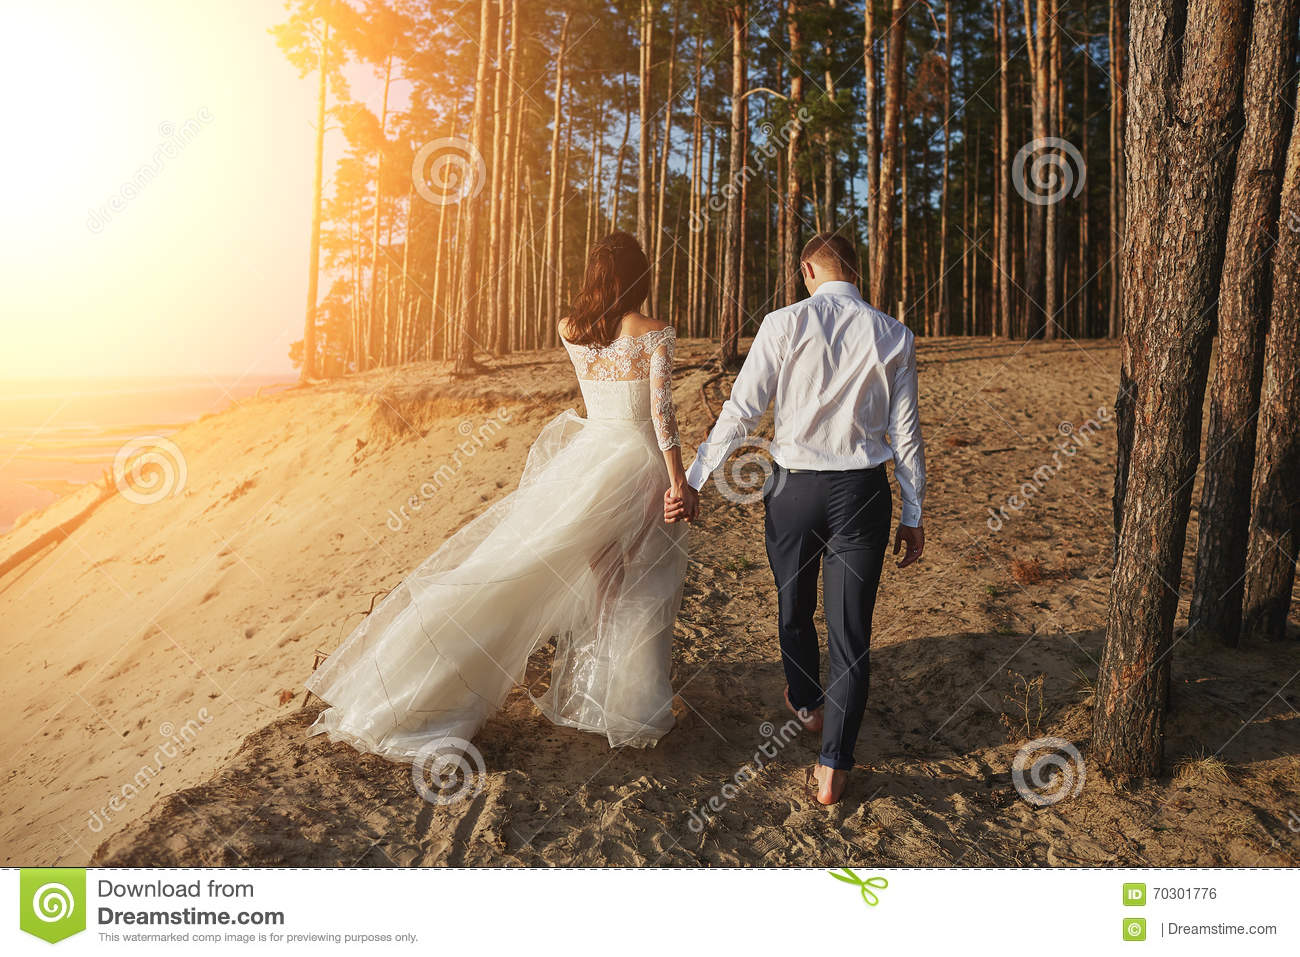 142 Photoshoot Lovers Photos Free Royalty Free Stock Photos From Dreamstime